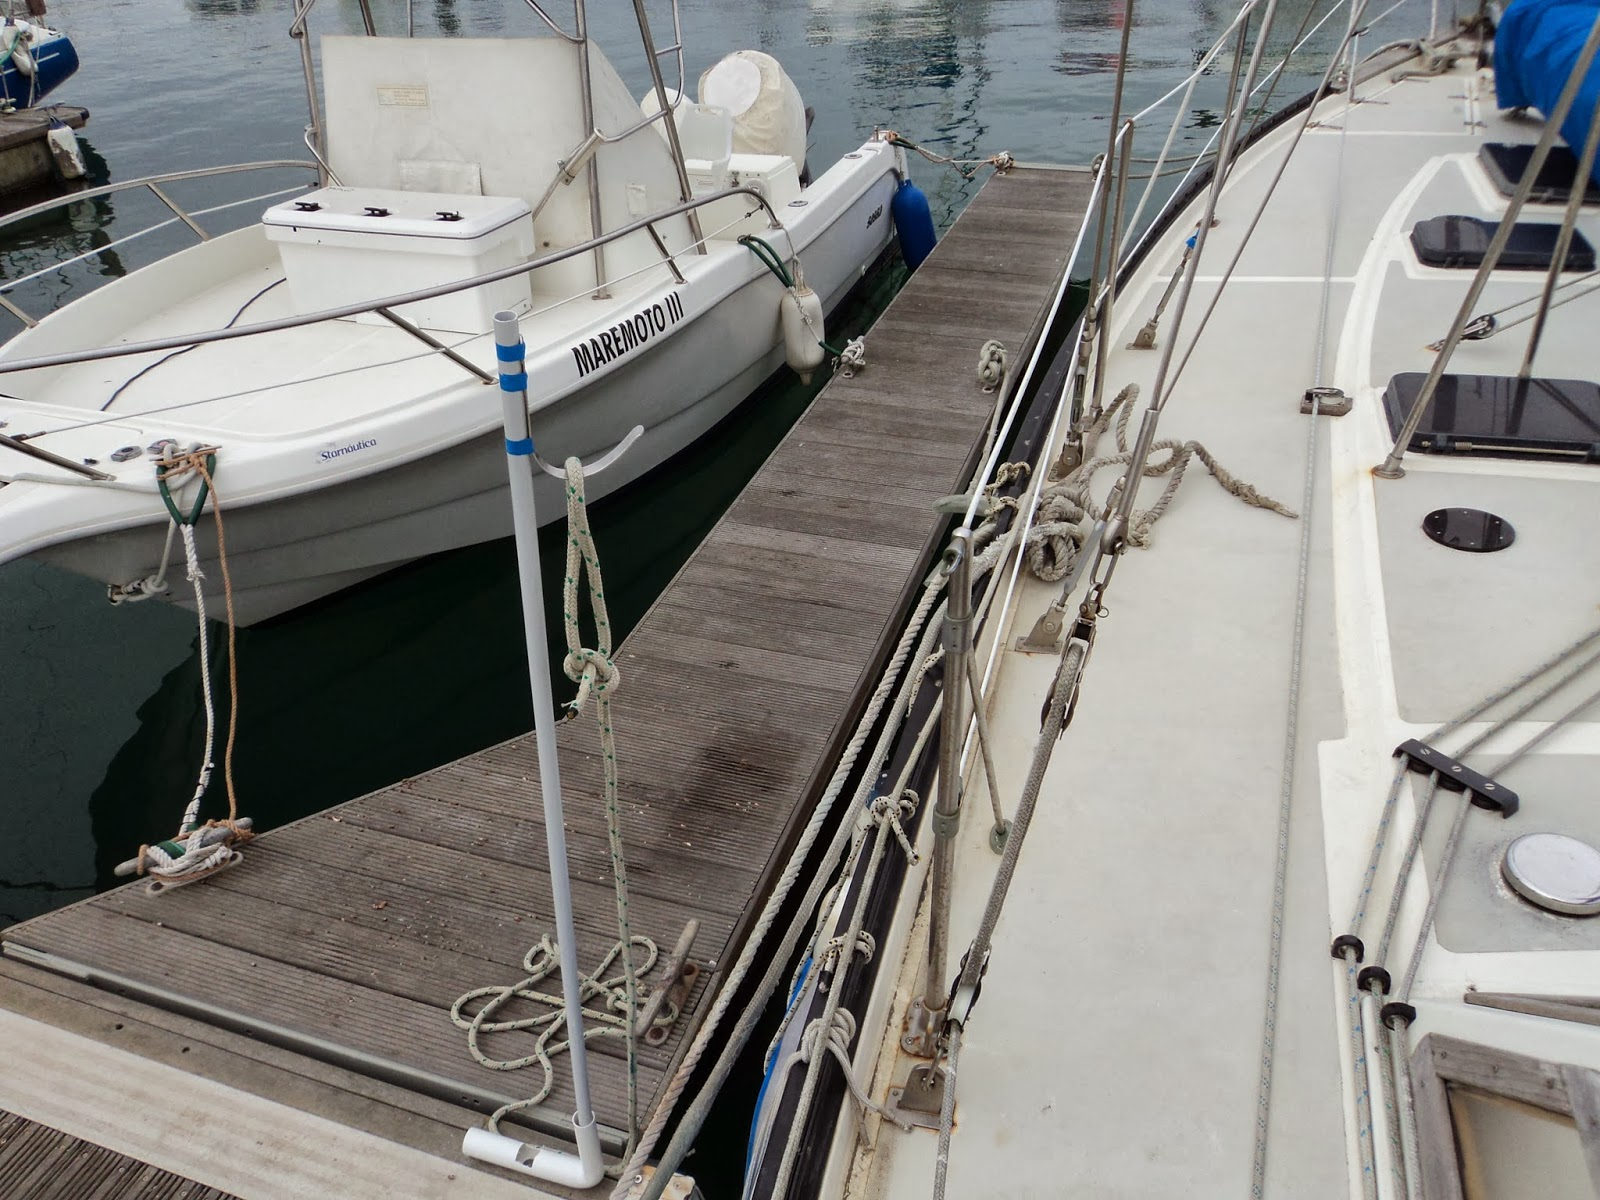 The Naked Boat and the Boatist: Docking Single Handed